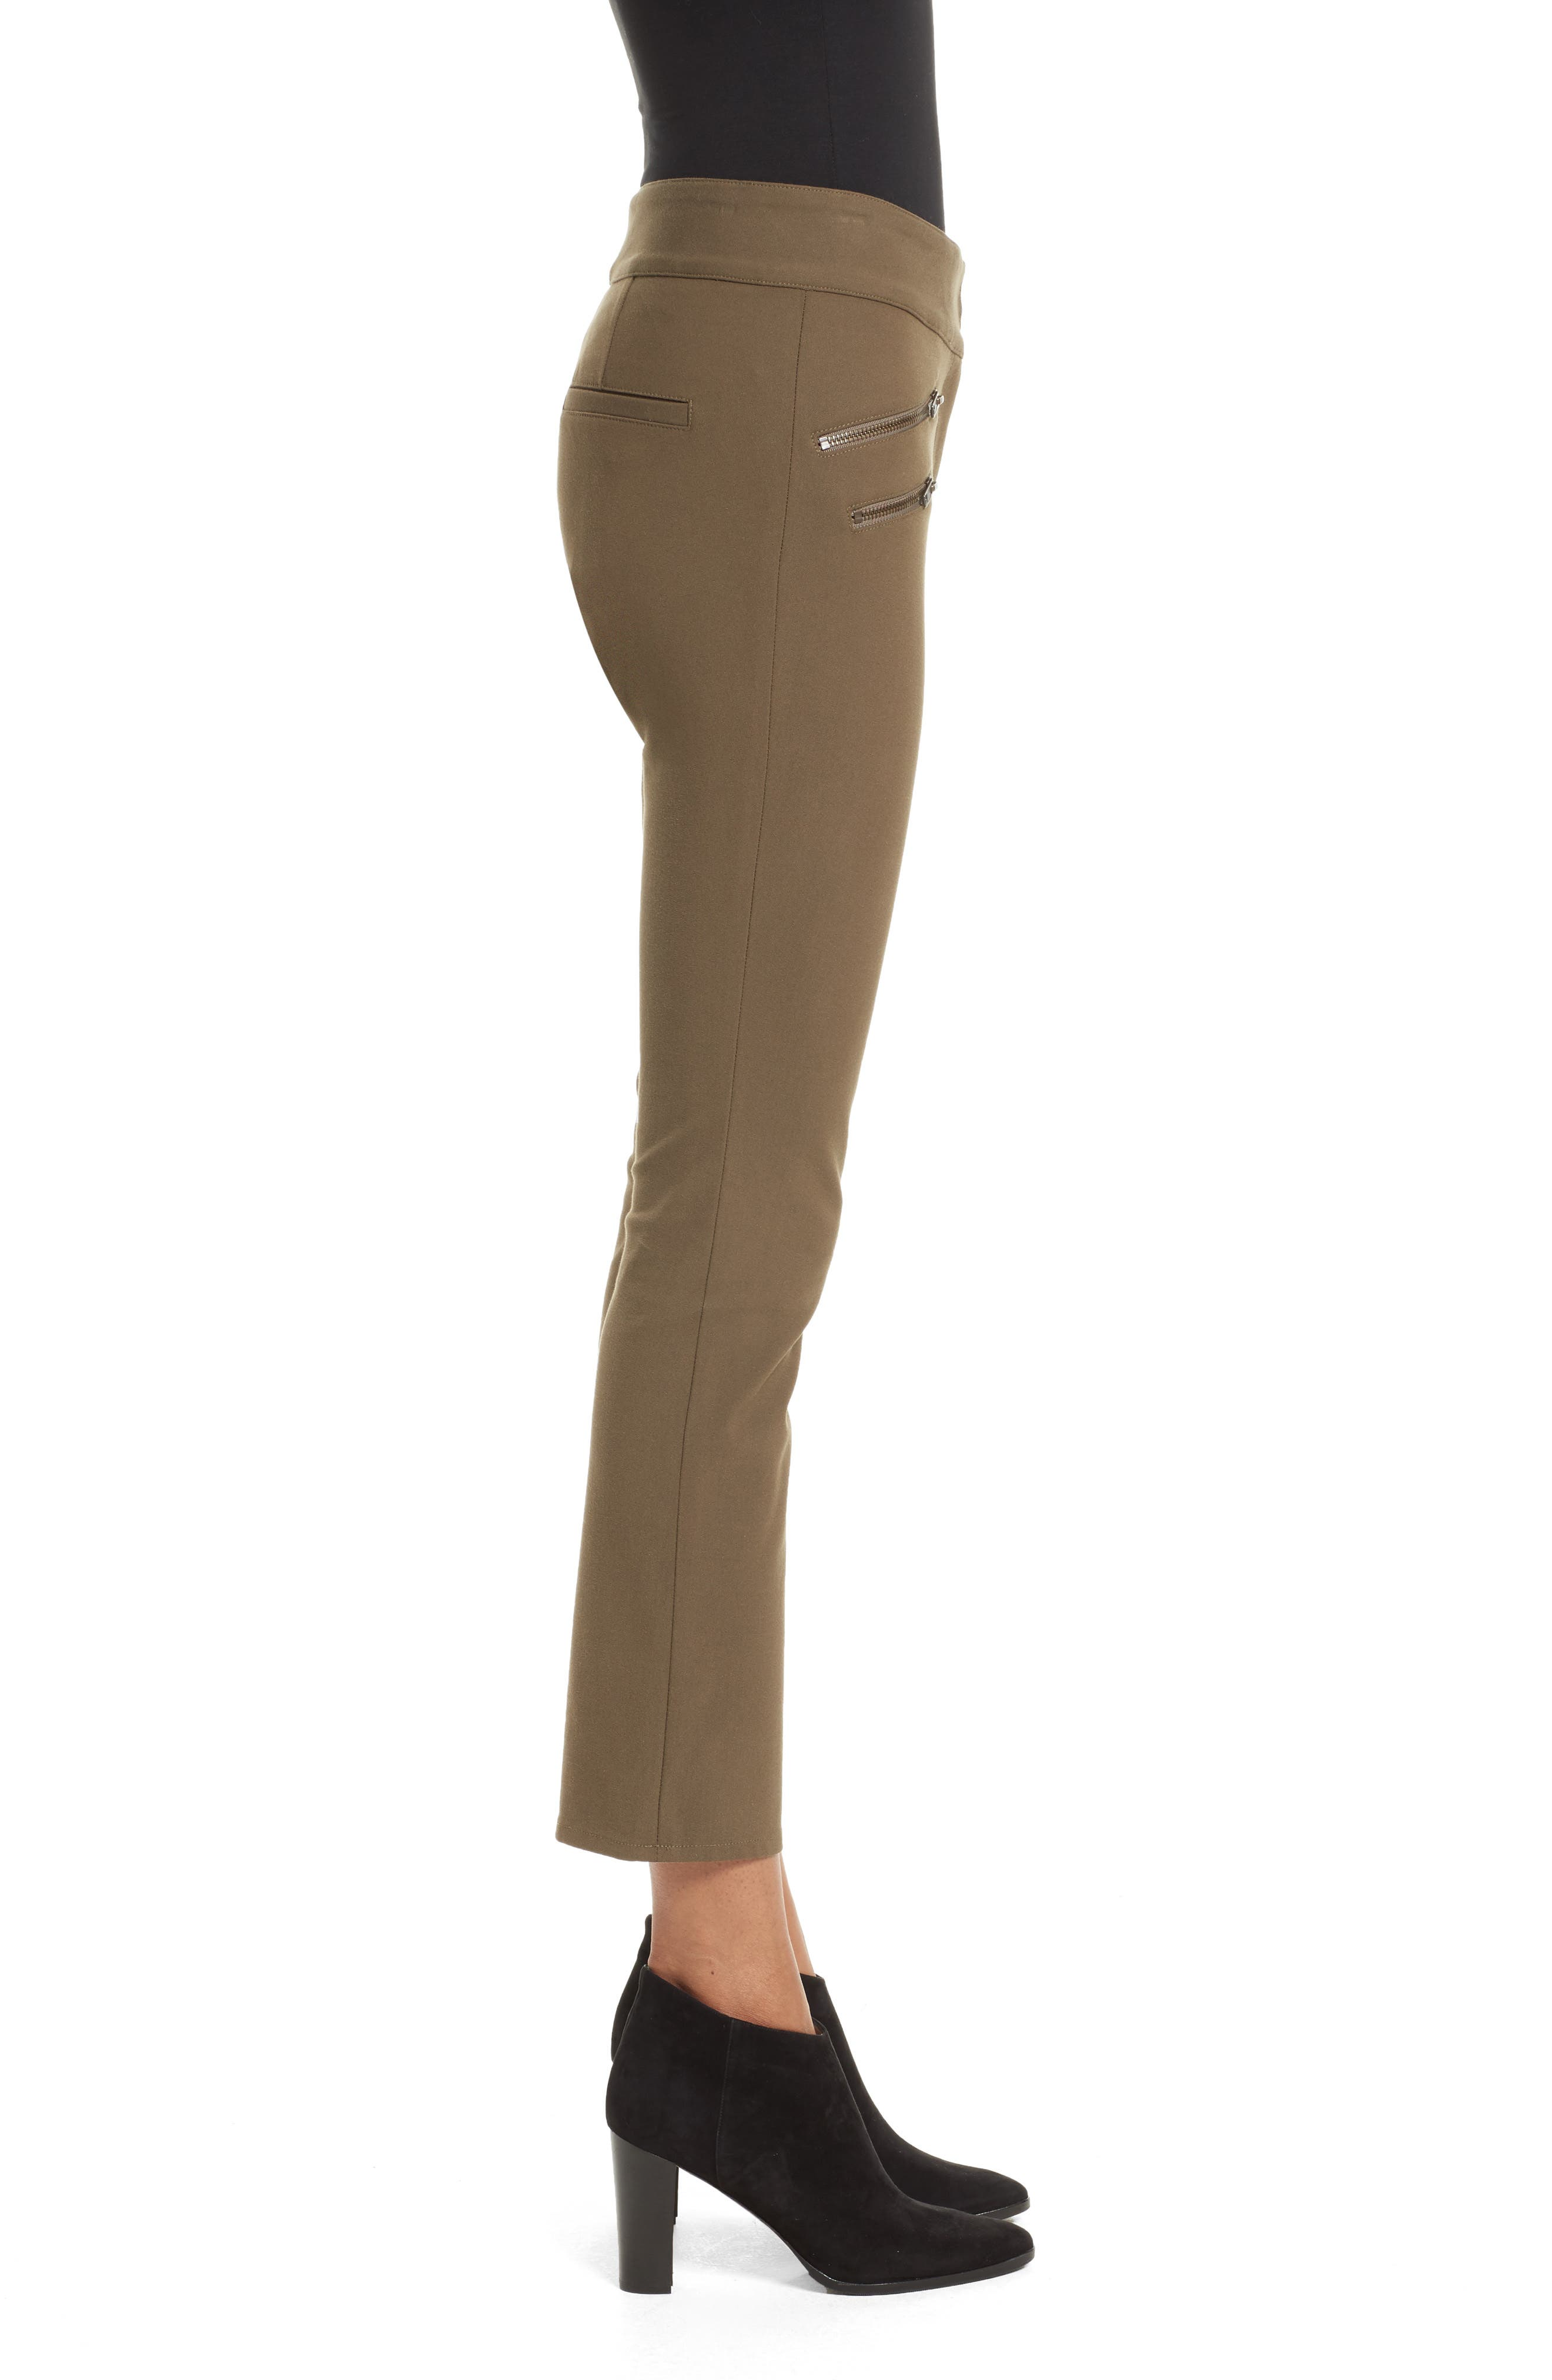 Adelaide Zipper Detail Crop Pants,                             Alternate thumbnail 3, color,                             Army Green